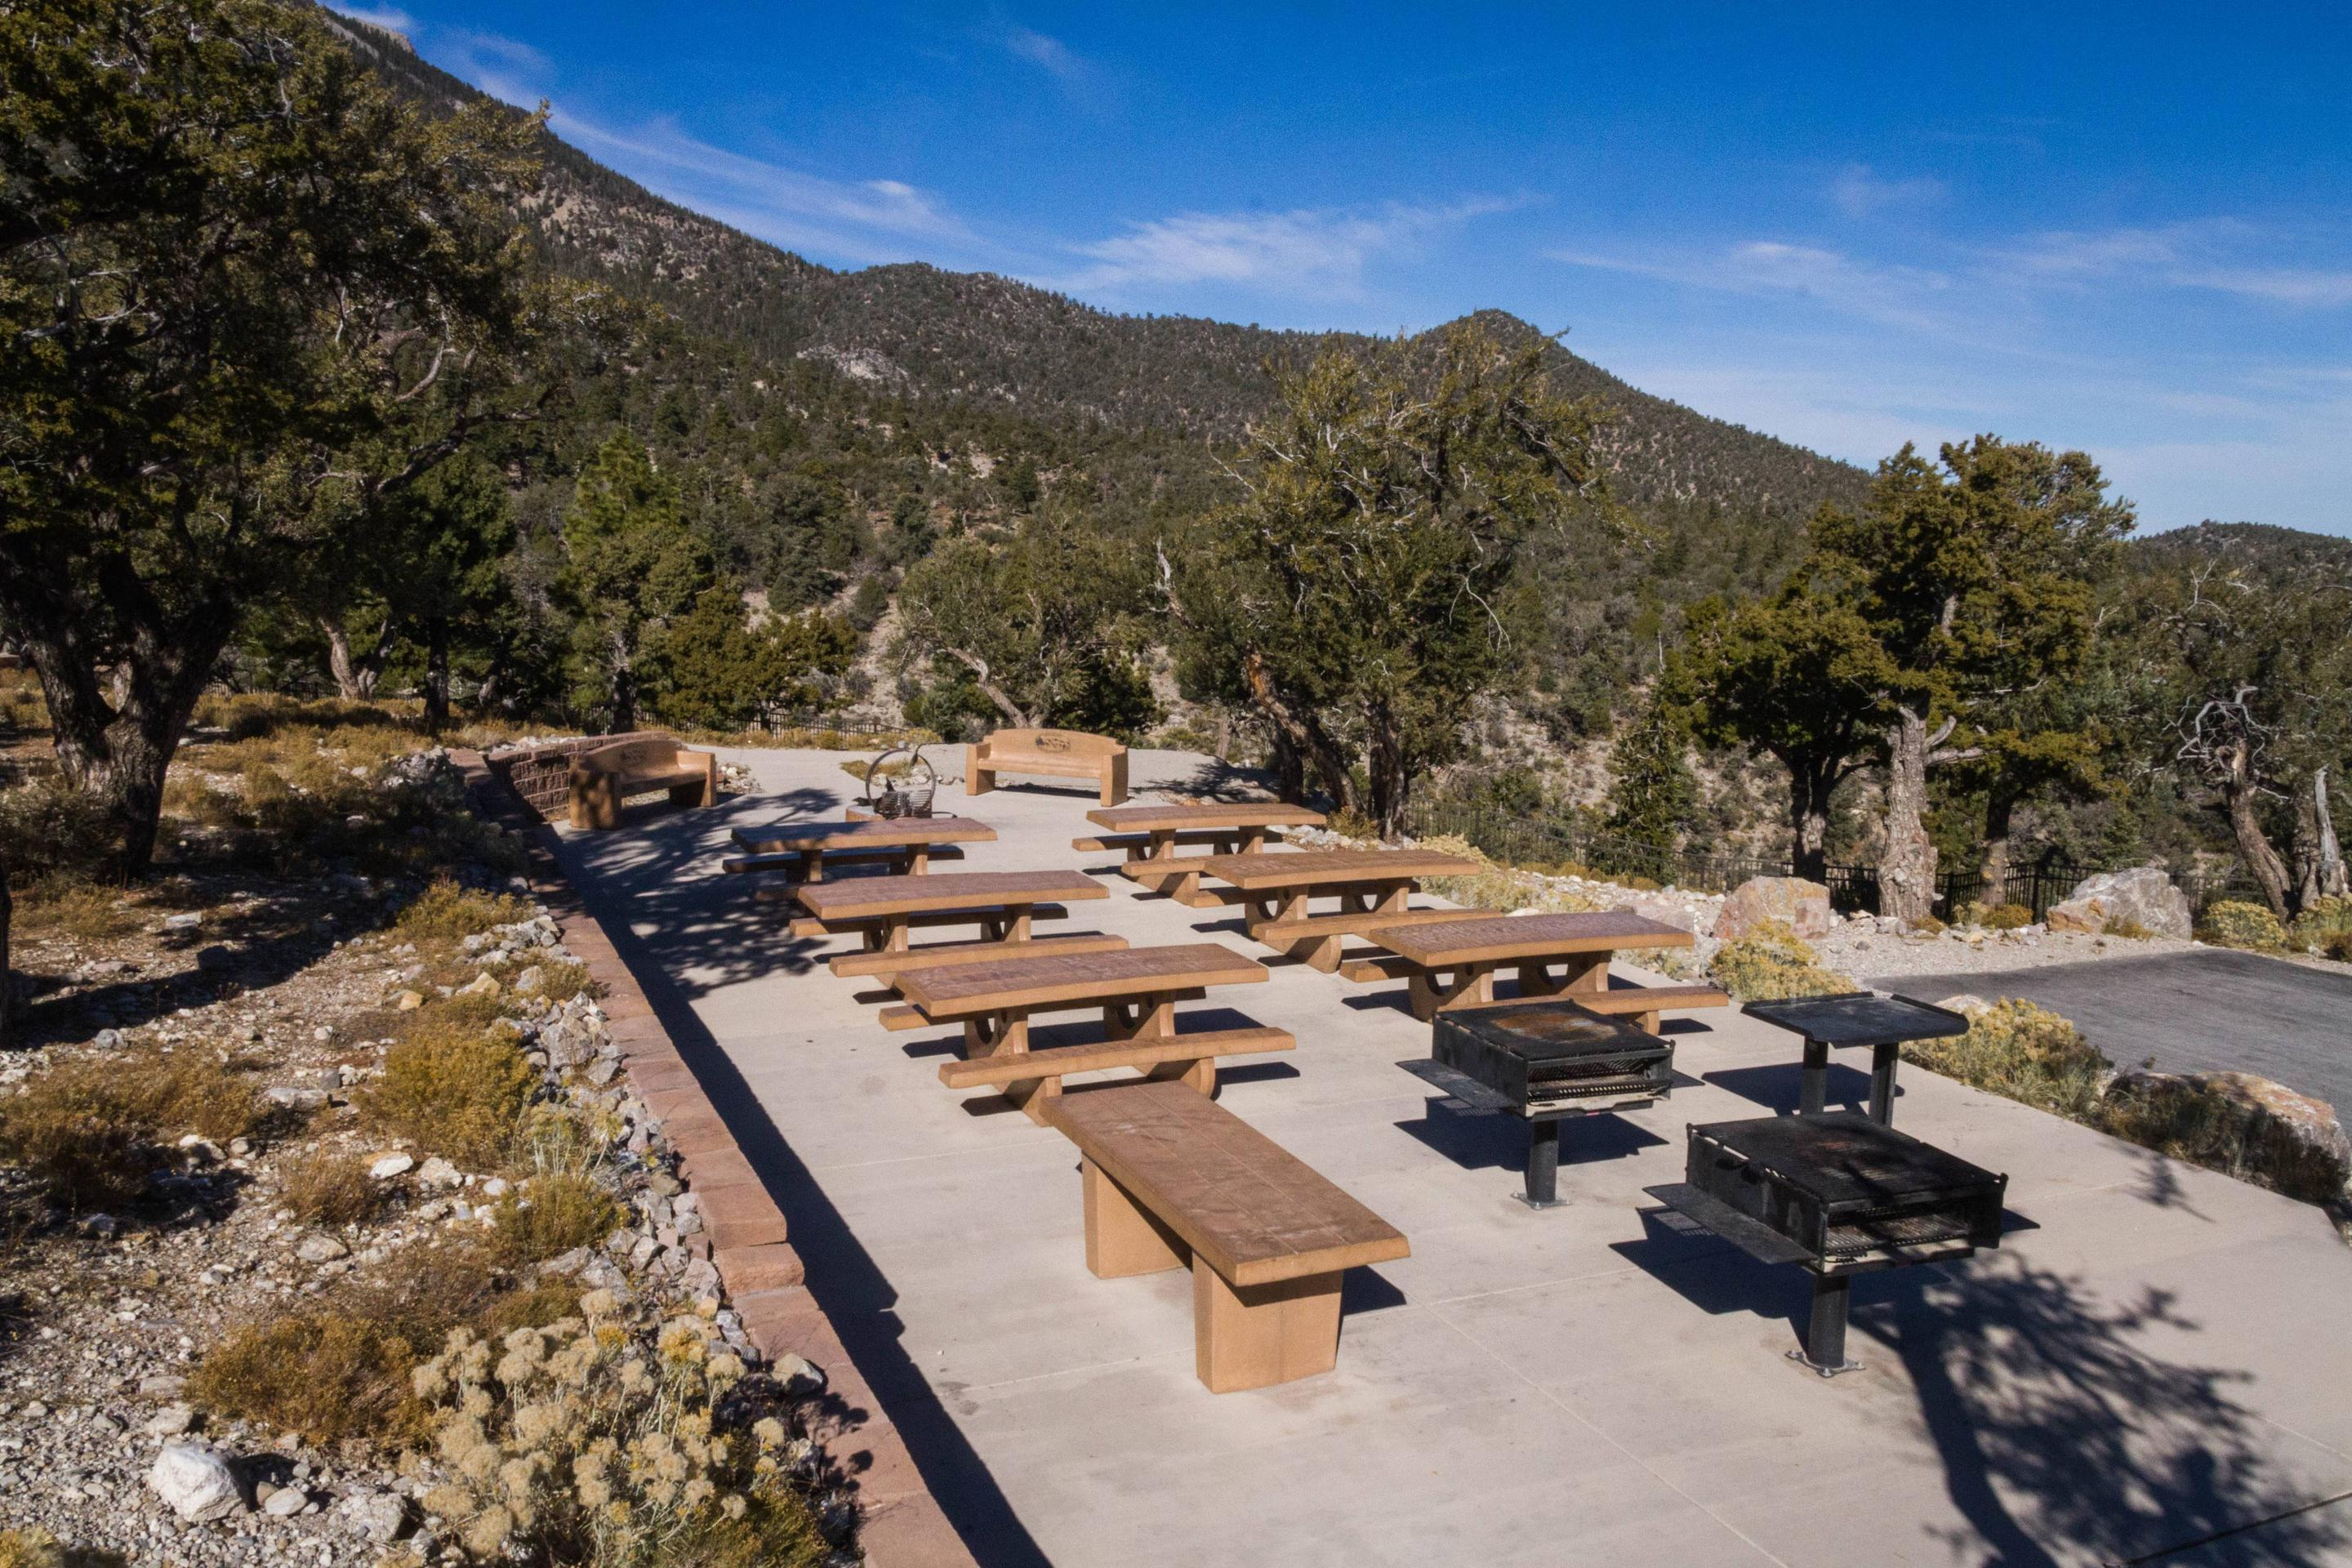 Picnic tablesCCC Site tables and grills